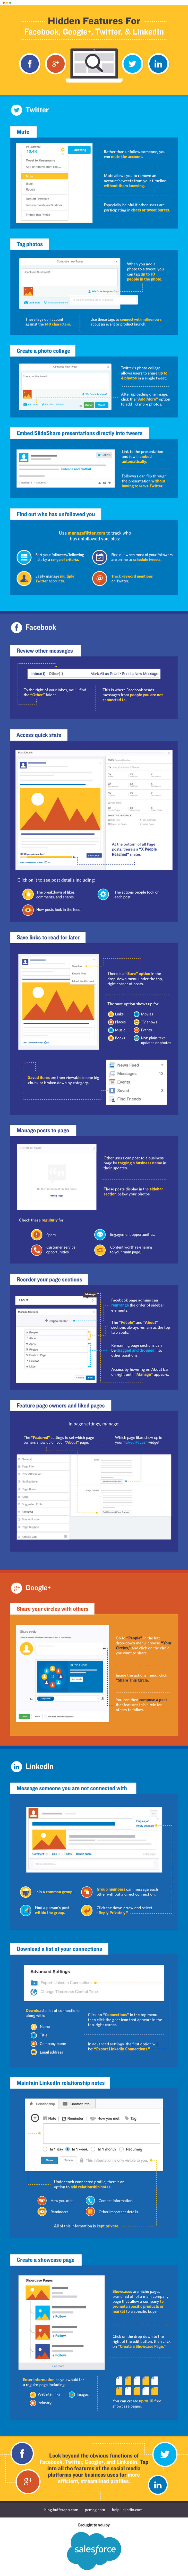 Infographic: The hidden features from Facebook, Google+, Twitter & LinkedIn